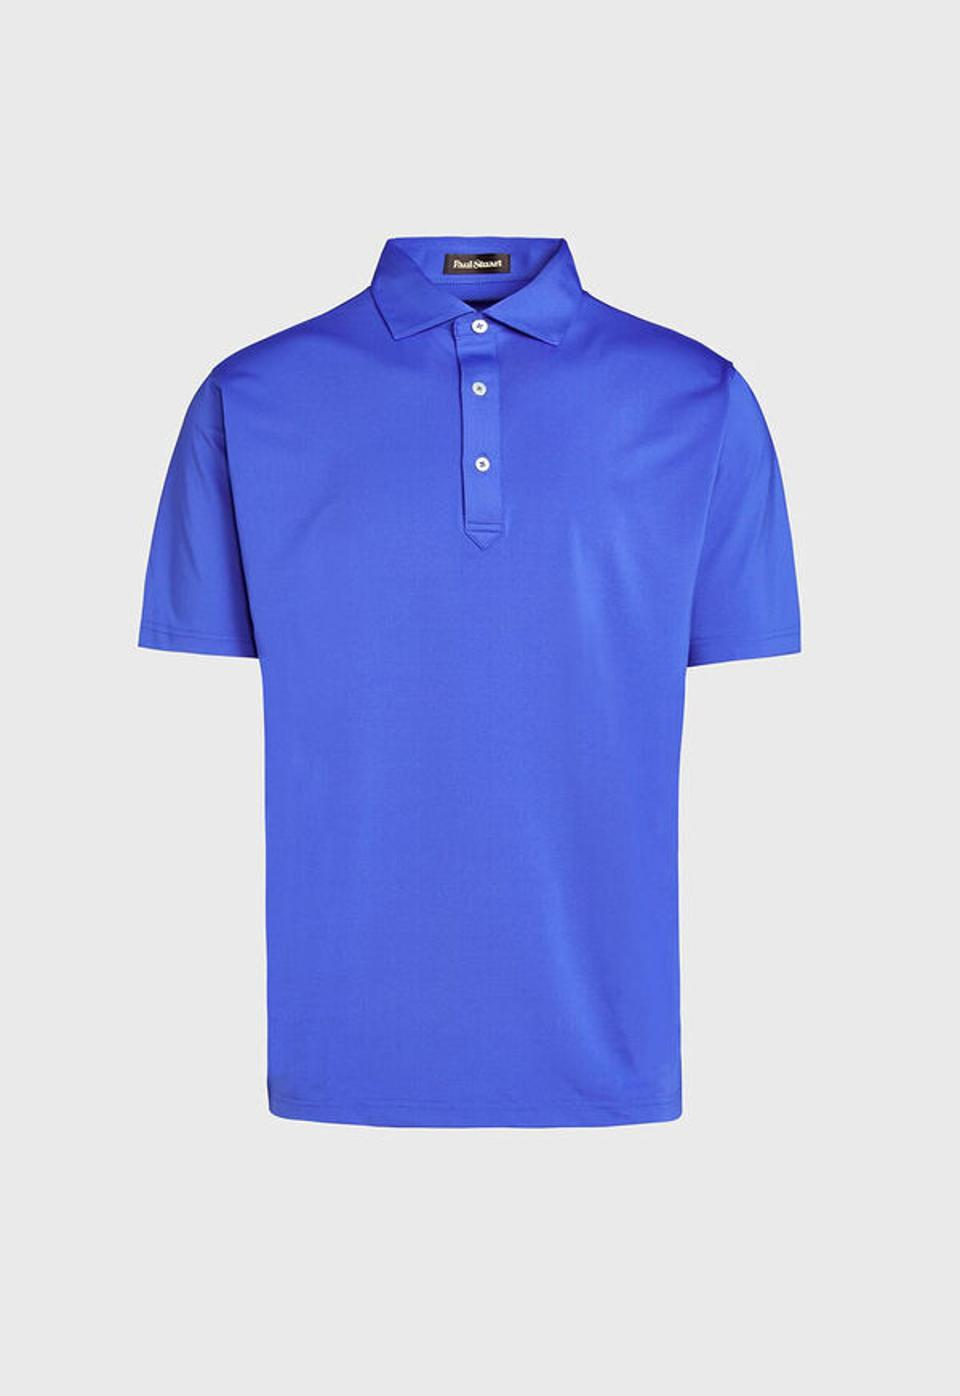 Paul Stuart's lightweight, technical polo in pima cotton and breathable performance spandex is an activewear essential for any activity that requires the wearer to look good while staying cool.